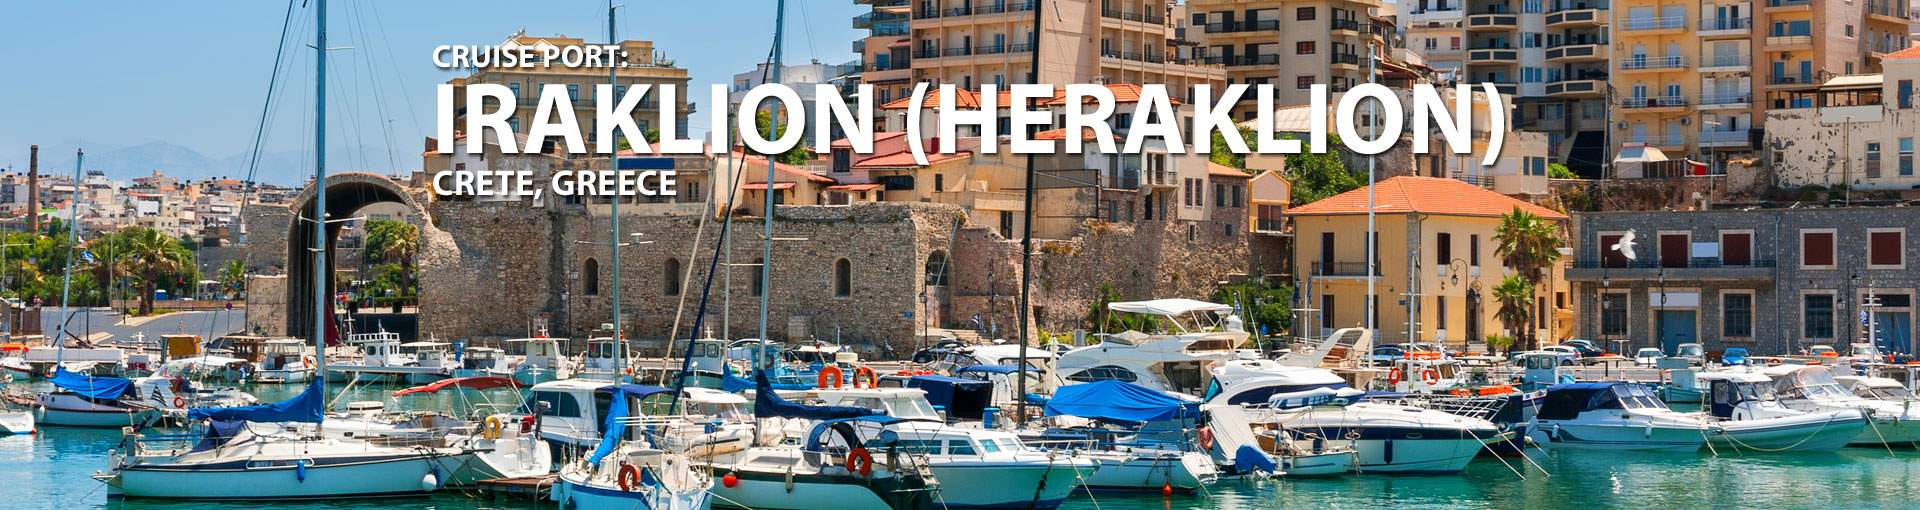 Cruises to Iraklion (Heraklion), Crete, Greece